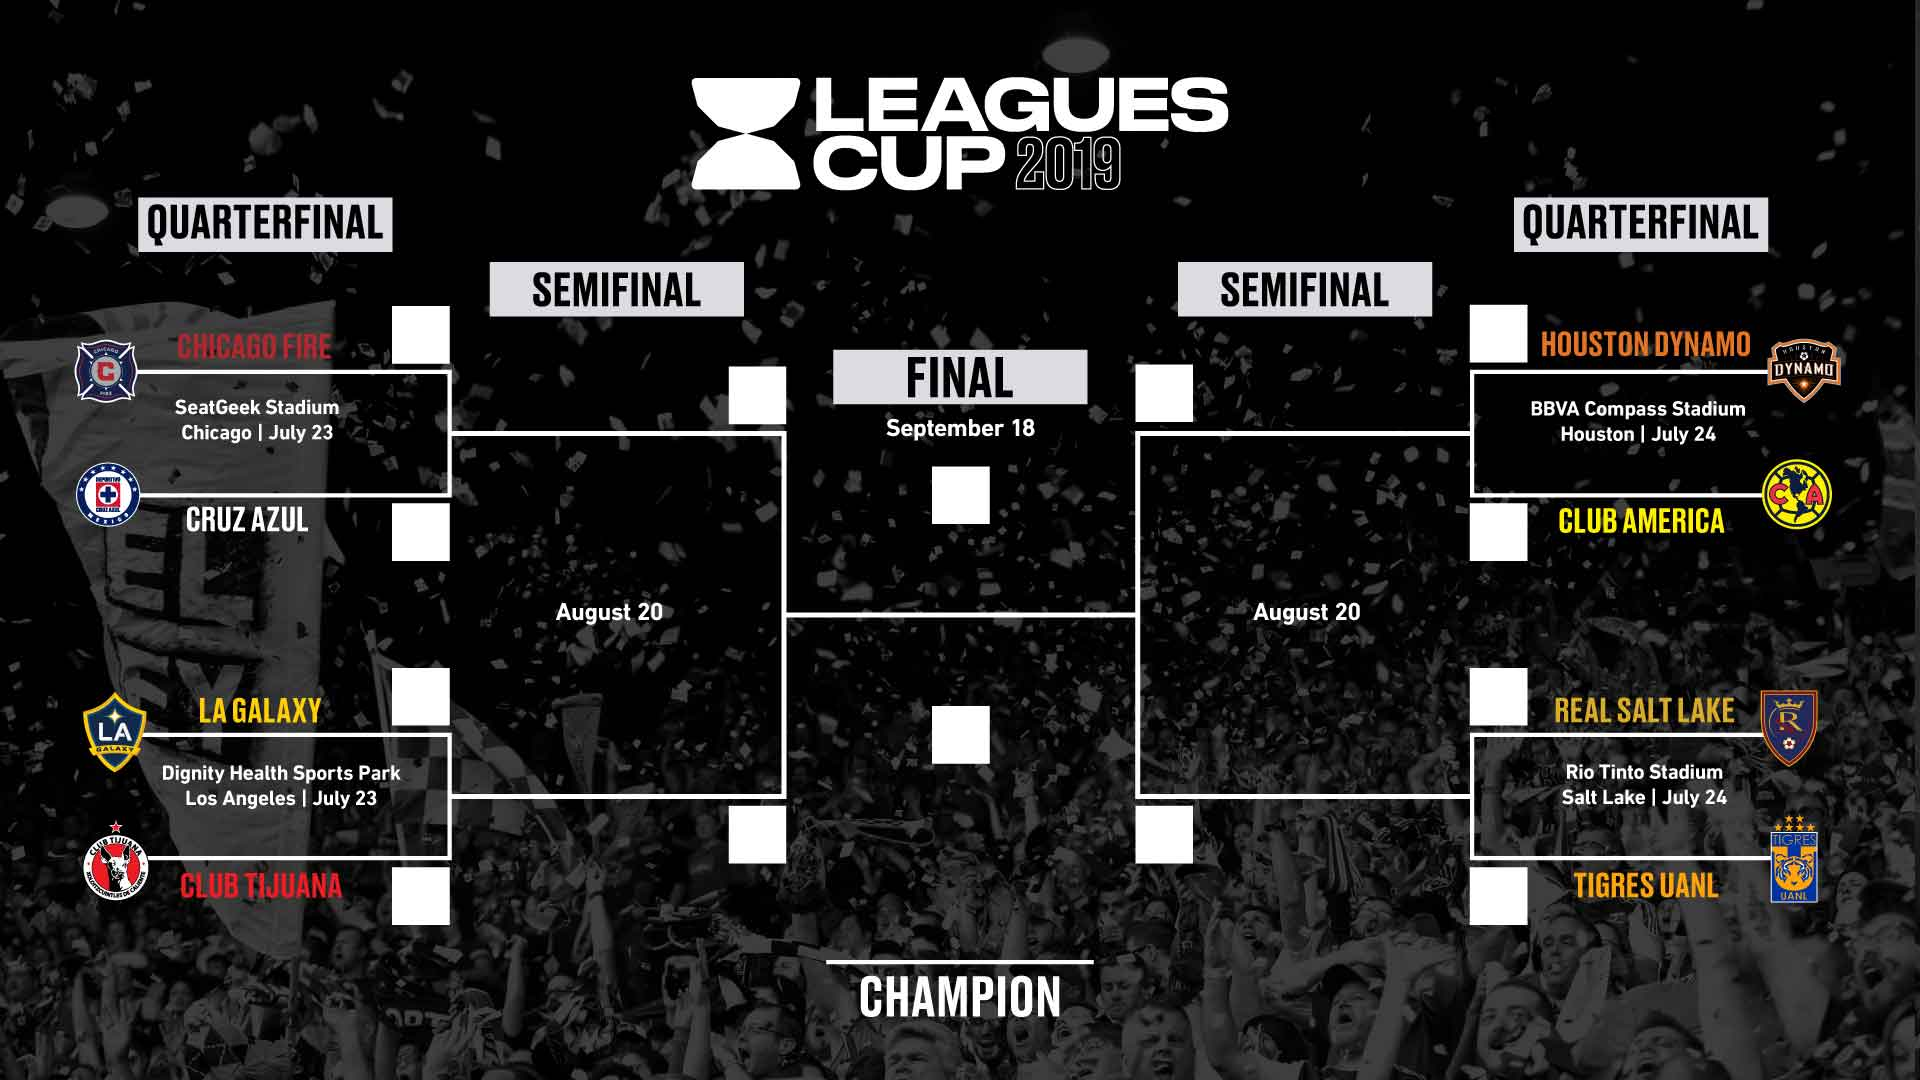 LeaguesCupBracket2019